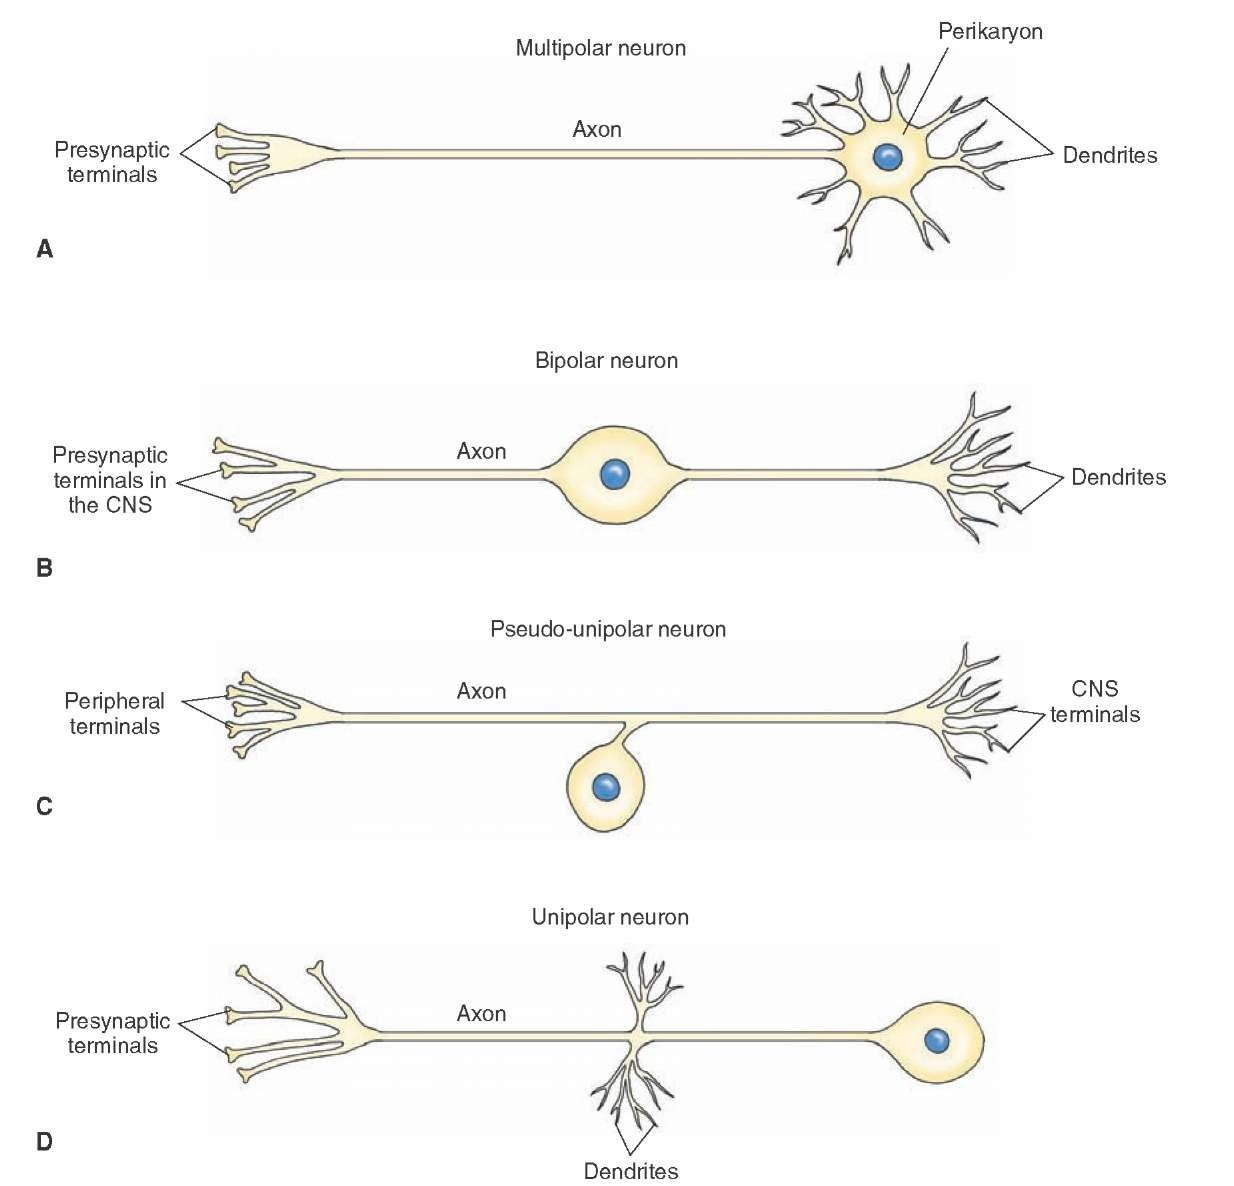 hight resolution of different types of neurons a multipolar neuron b bipolar neuron c pseudo unipolar neuron d unipolar neuron cns central nervous system